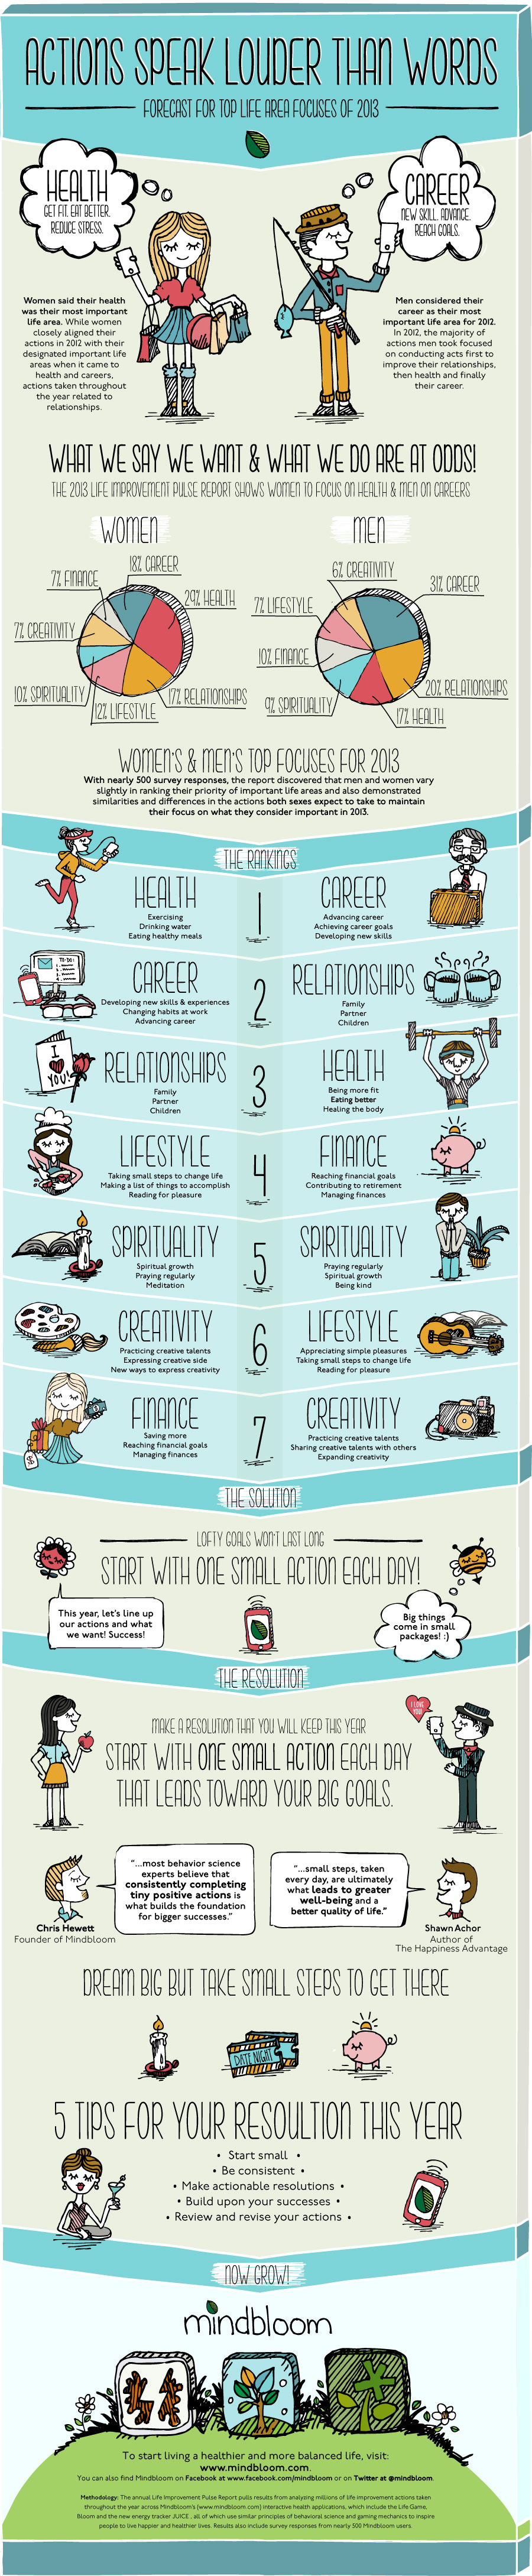 2013 New Year's Resolutions, health applications, infographic